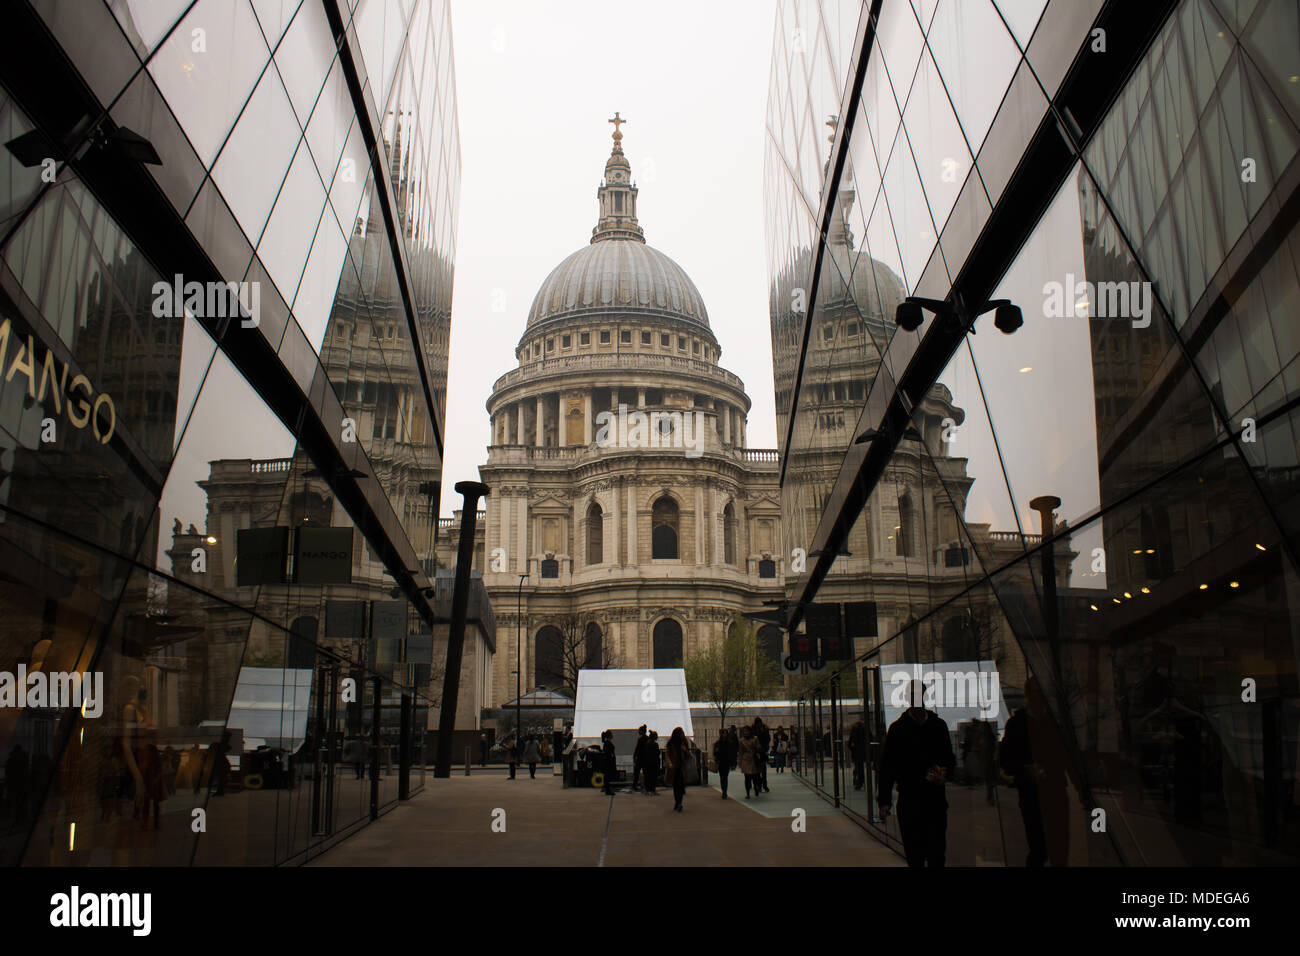 Reflection image of St. Pauls Cathedral, truly sensational and Tranquil with the clouds of Spring adding to the dramatic appearance. - Stock Image